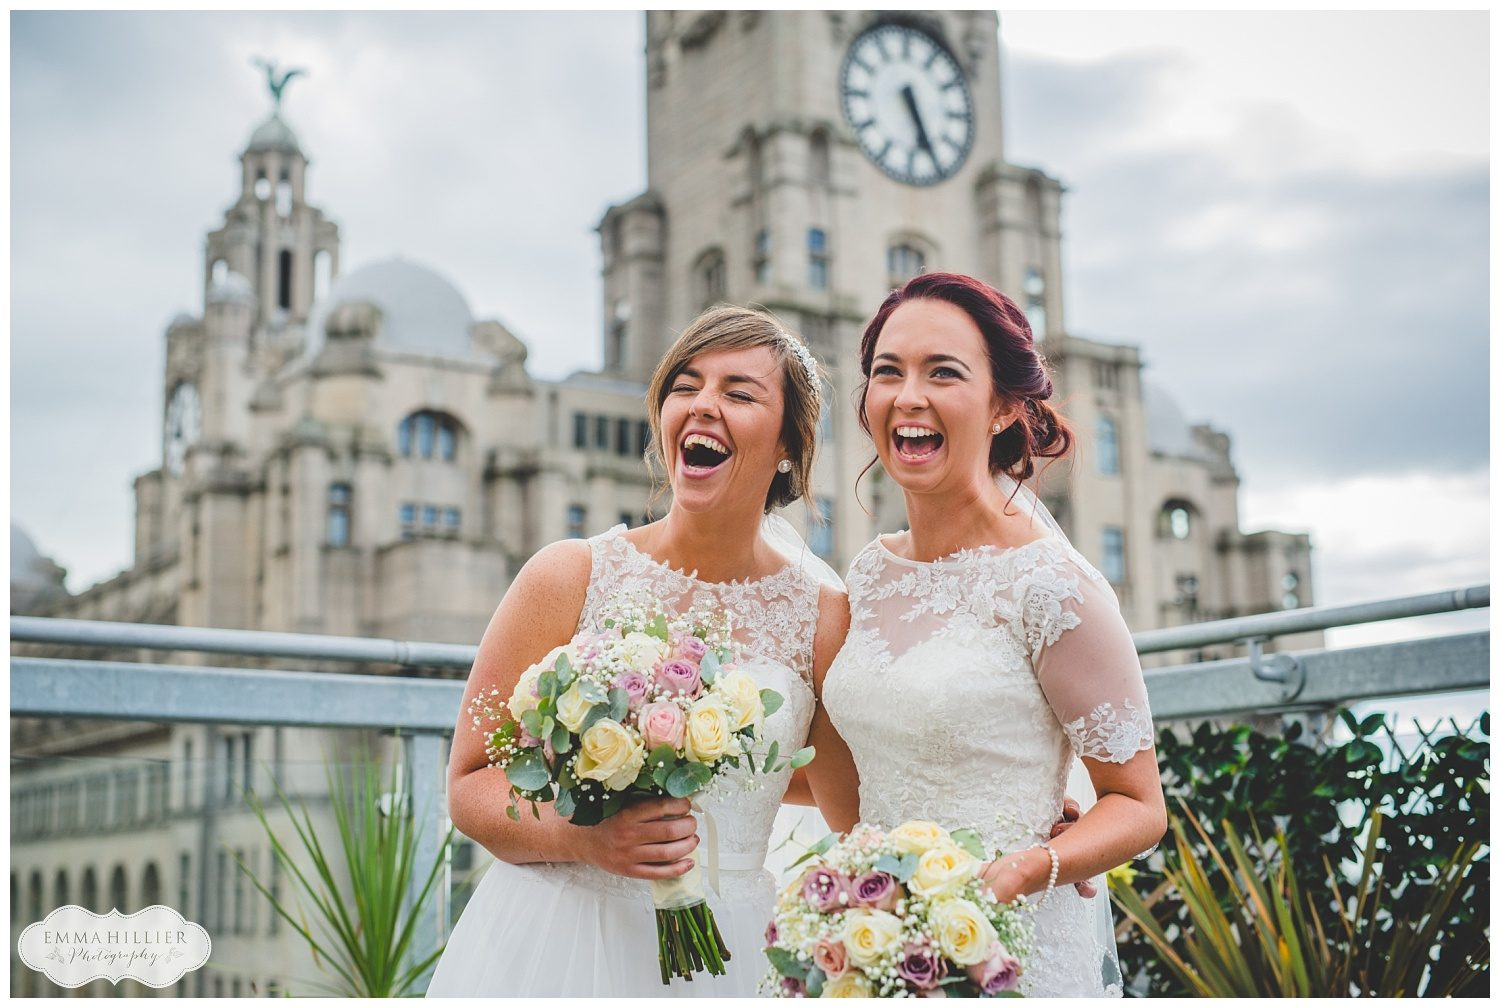 A stunning summer wedding at Ness Gardens and Oh Me Oh My